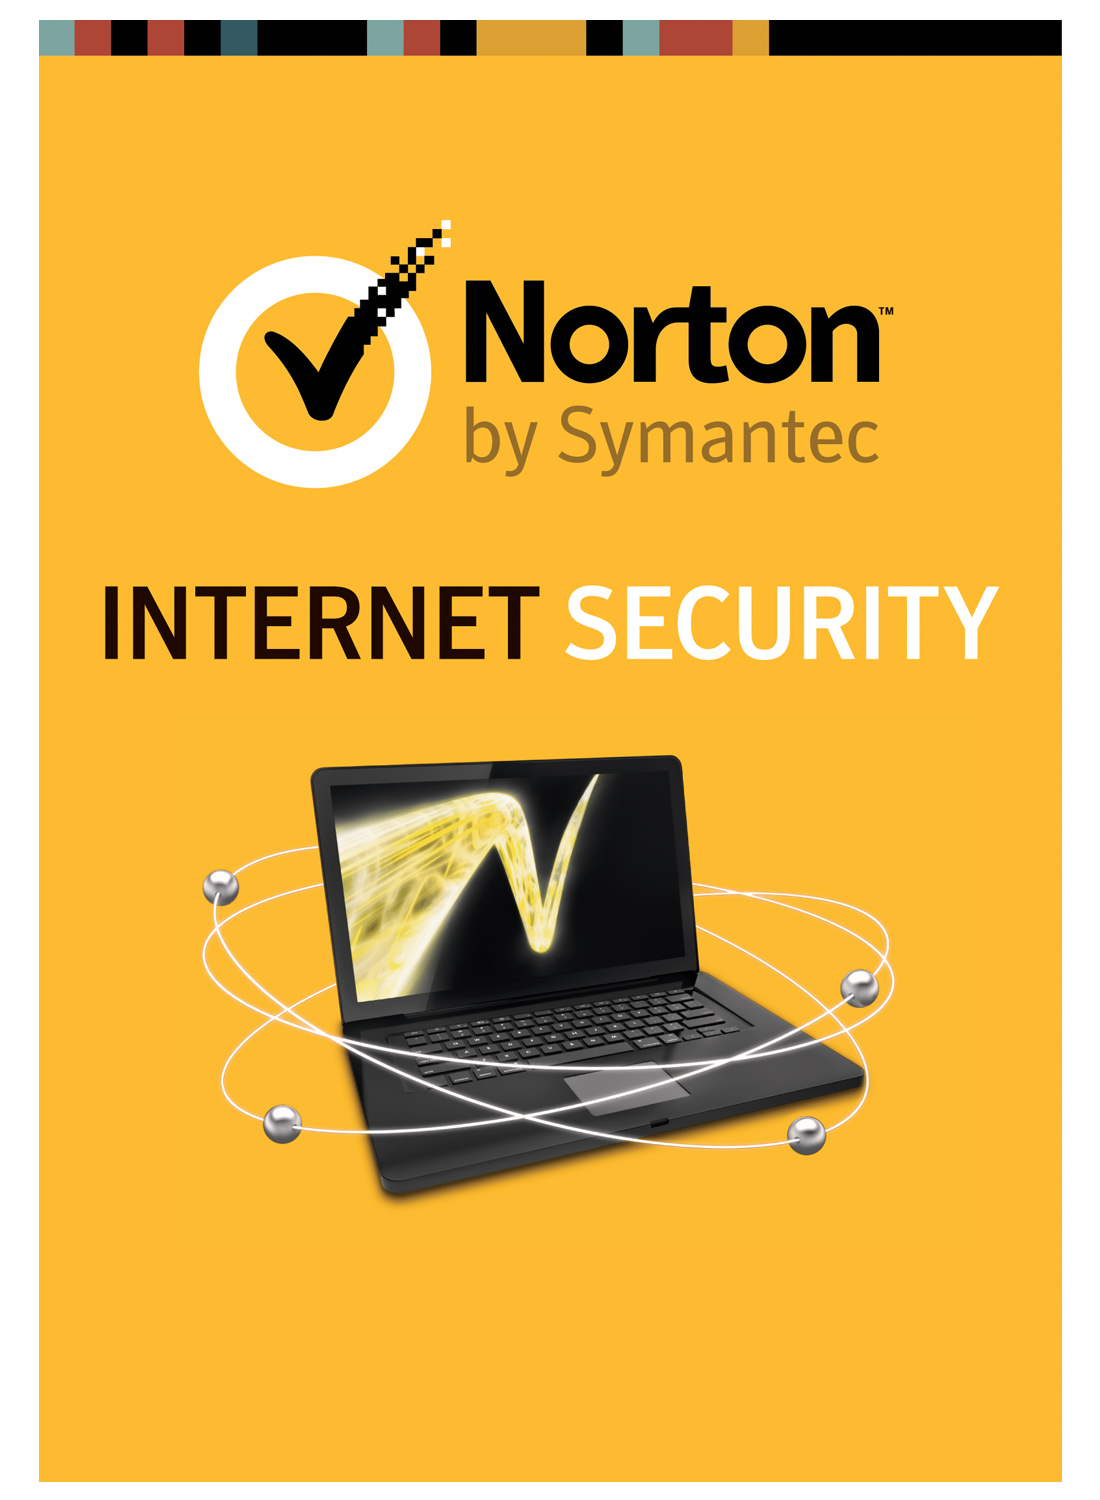 Download Norton Internet Security 2014 free